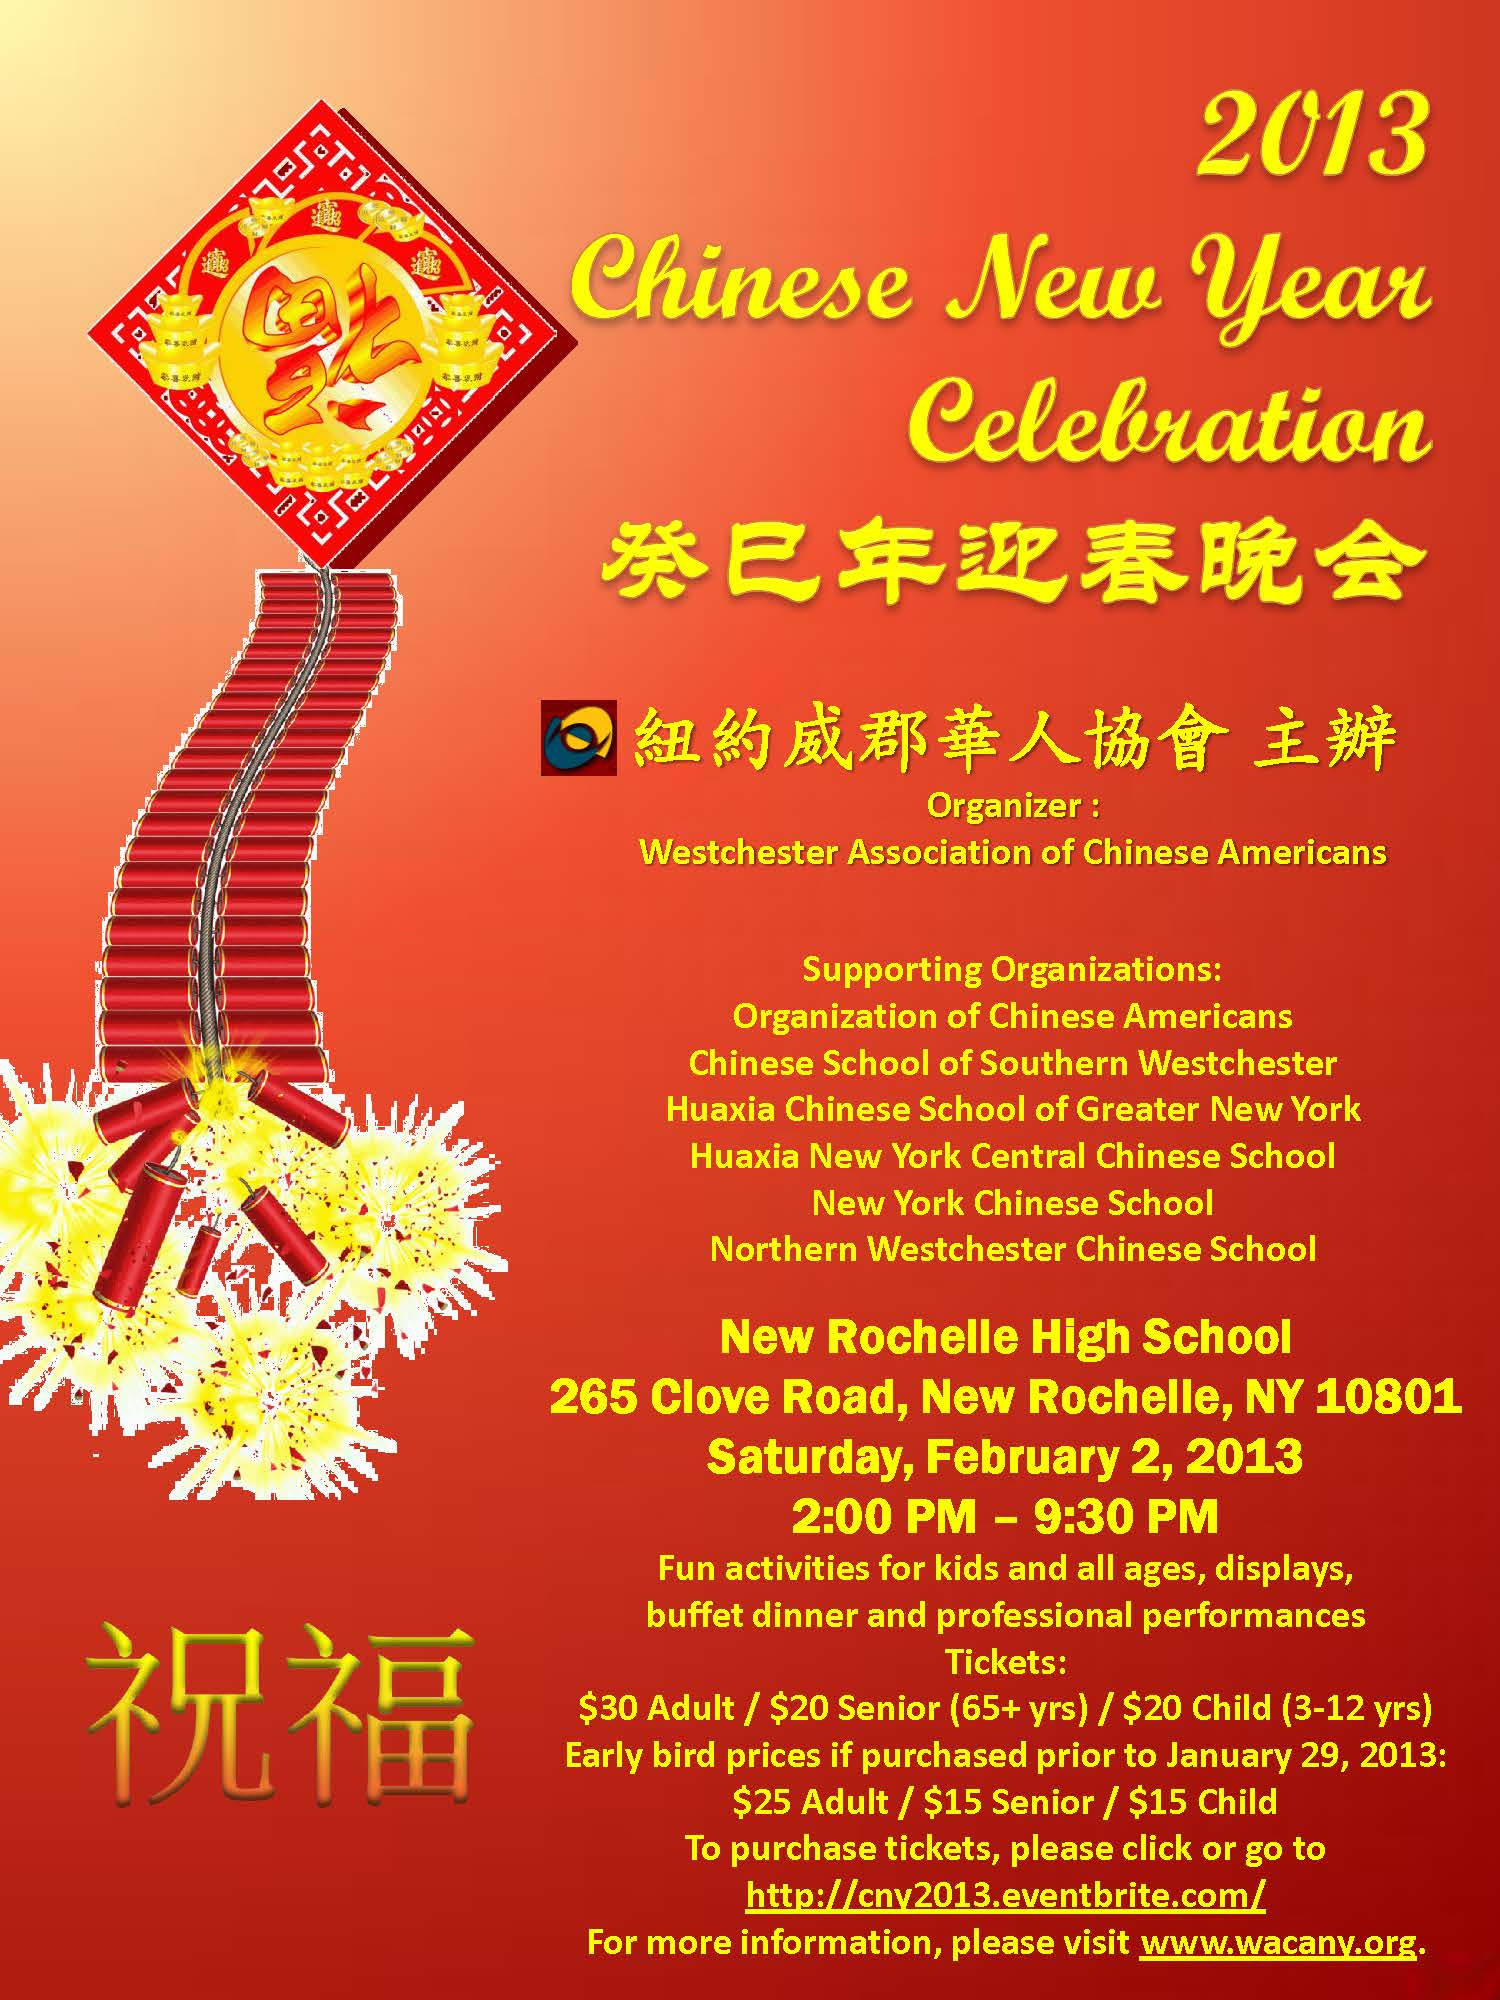 2013 Chinese New Year Celebration Flyer[1].jpg